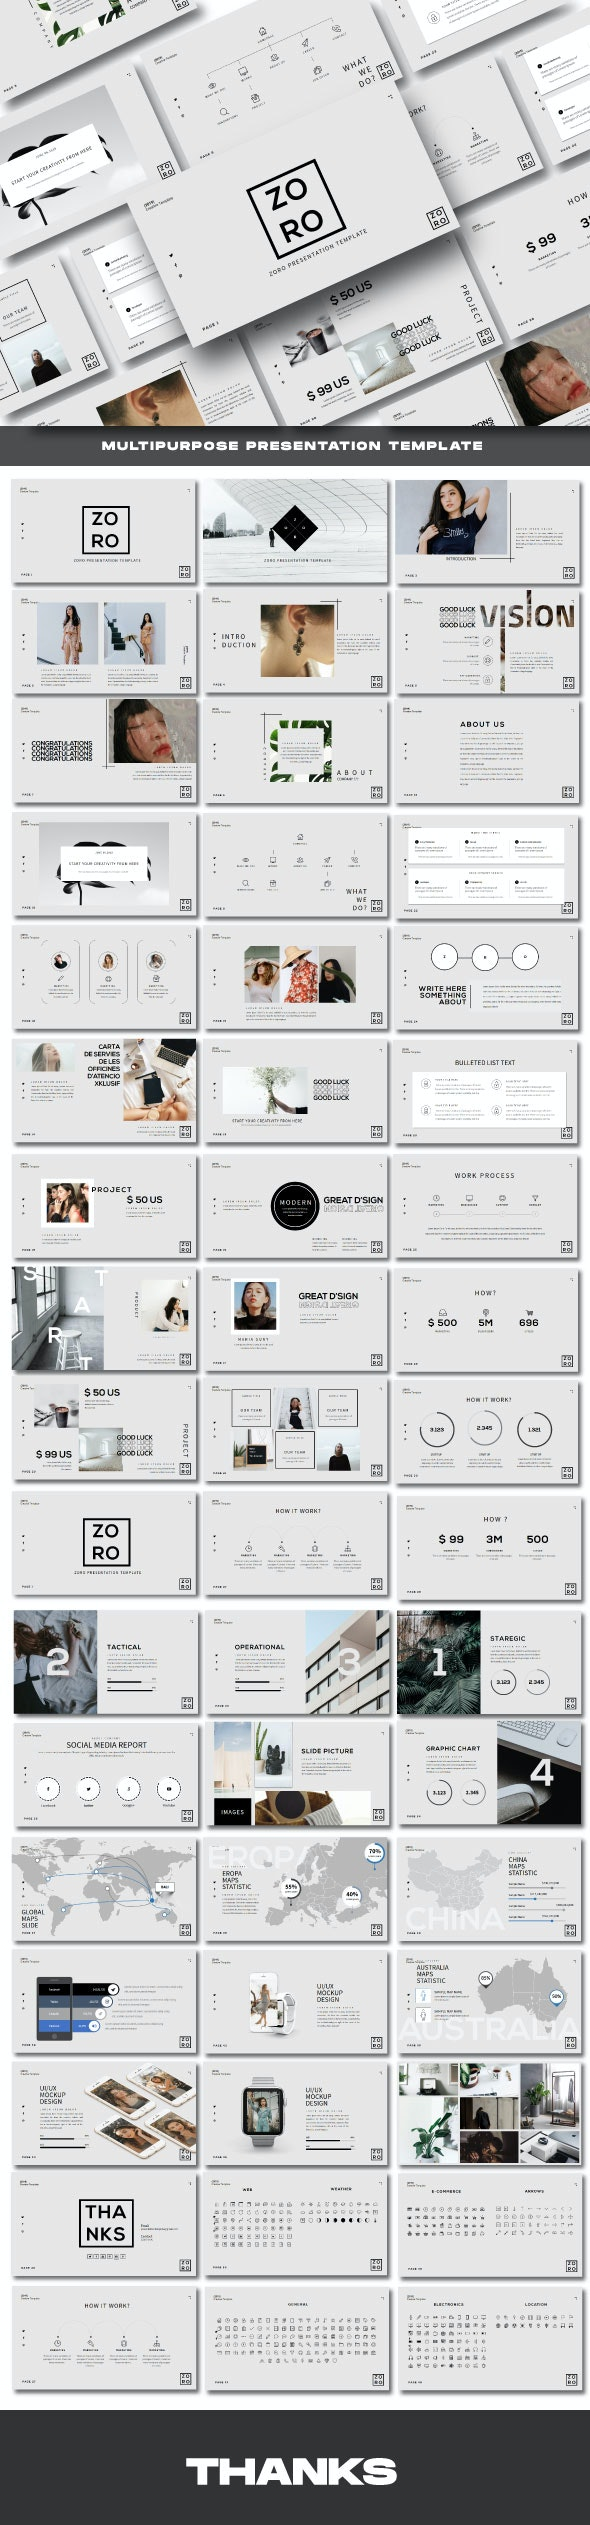 Zoro Business Powerpoint Template - Business PowerPoint Templates